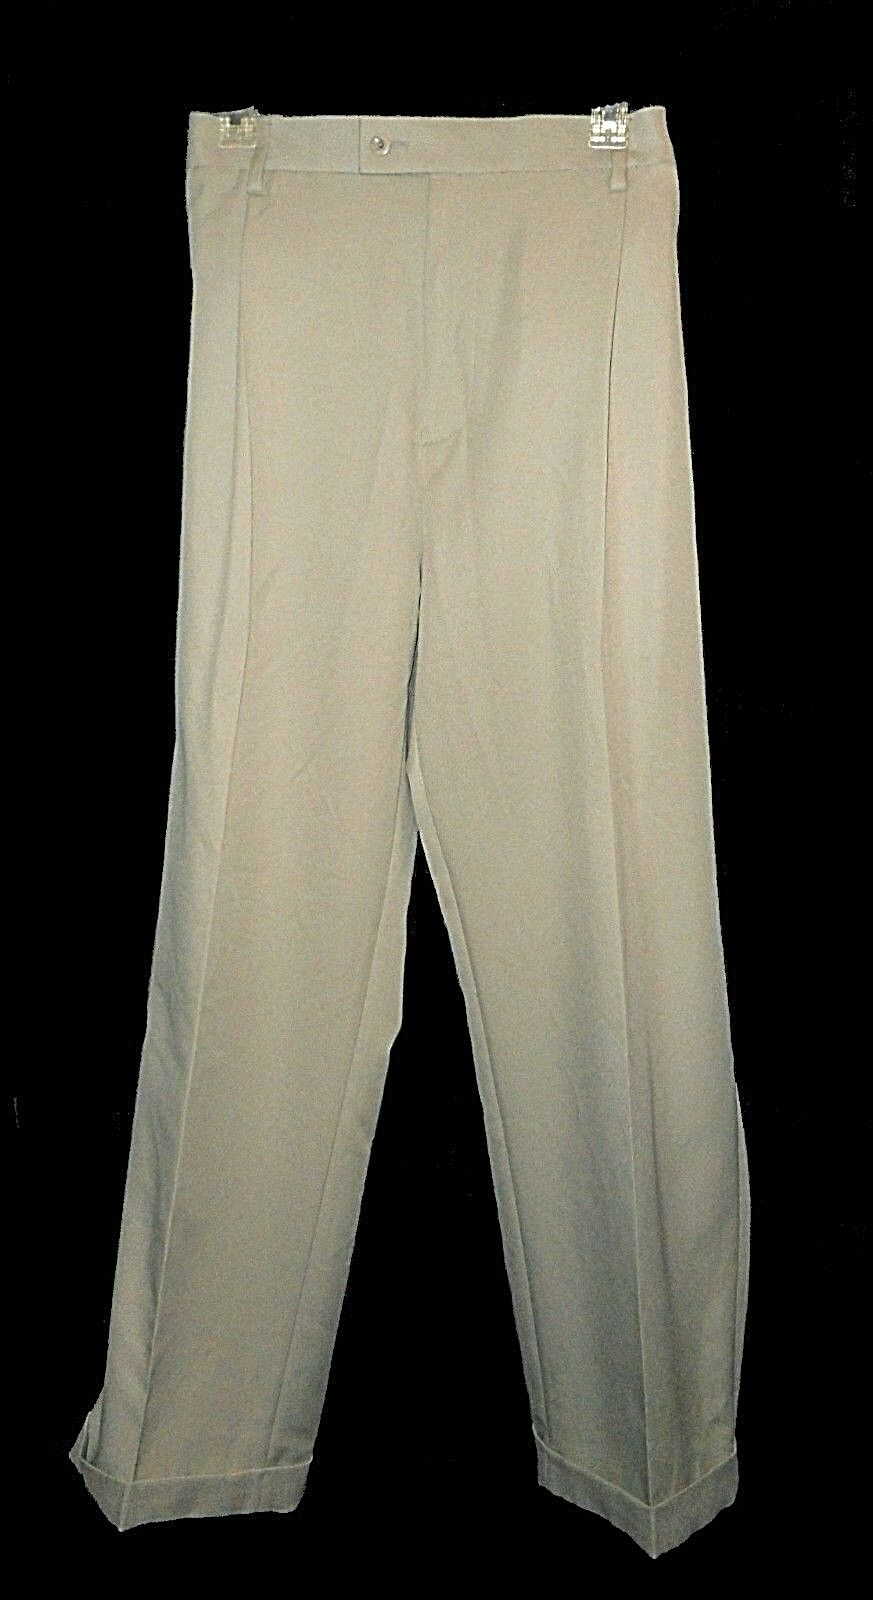 New Pants, Saddlebred, Comfort-waist Straight-Fit Pleated MSRP- 42X30